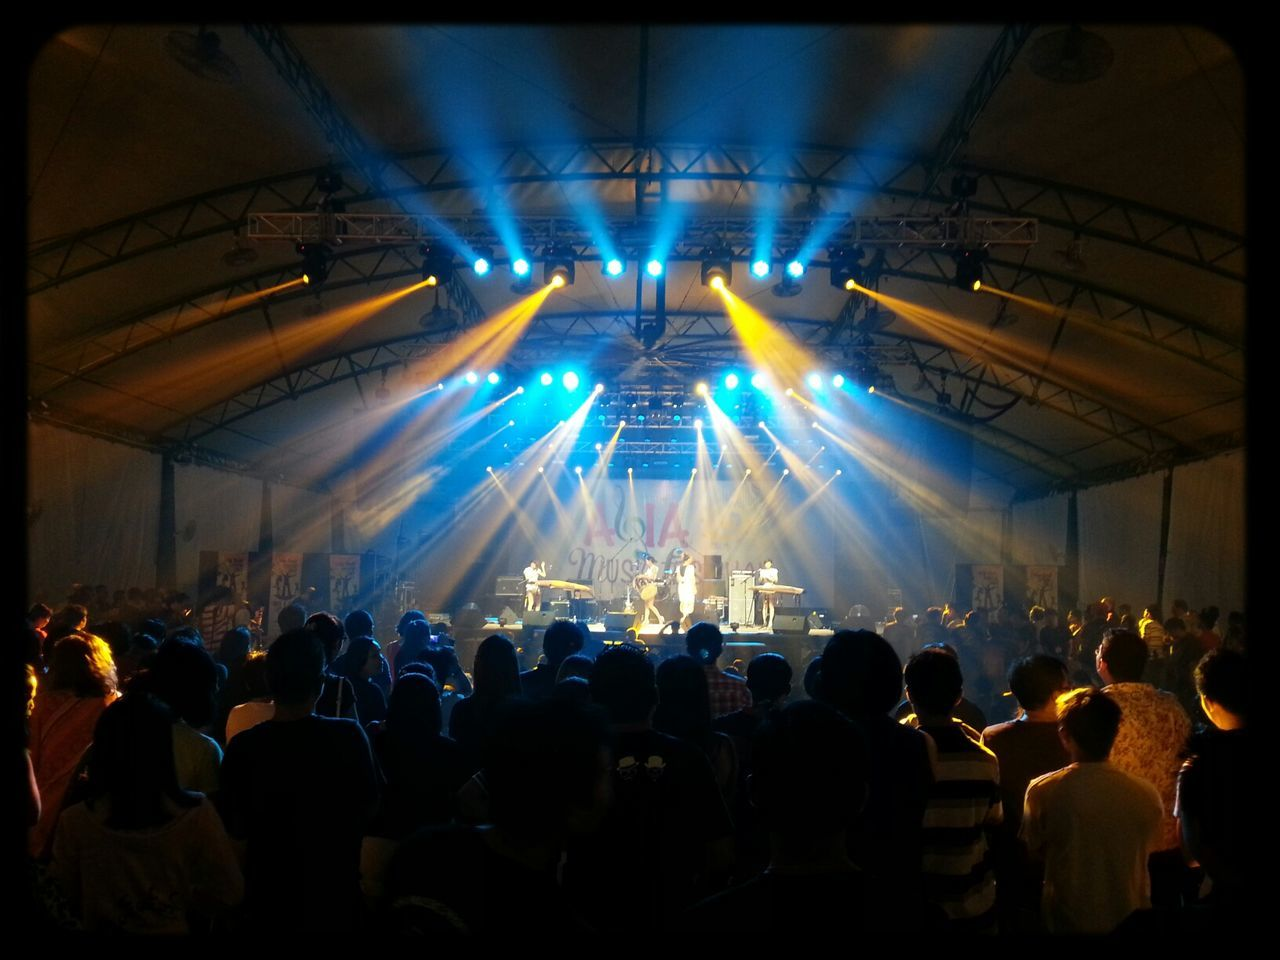 large group of people, crowd, illuminated, real people, indoors, arts culture and entertainment, men, music, women, stage - performance space, togetherness, audience, leisure activity, stage light, performance, youth culture, nightlife, night, popular music concert, musician, people